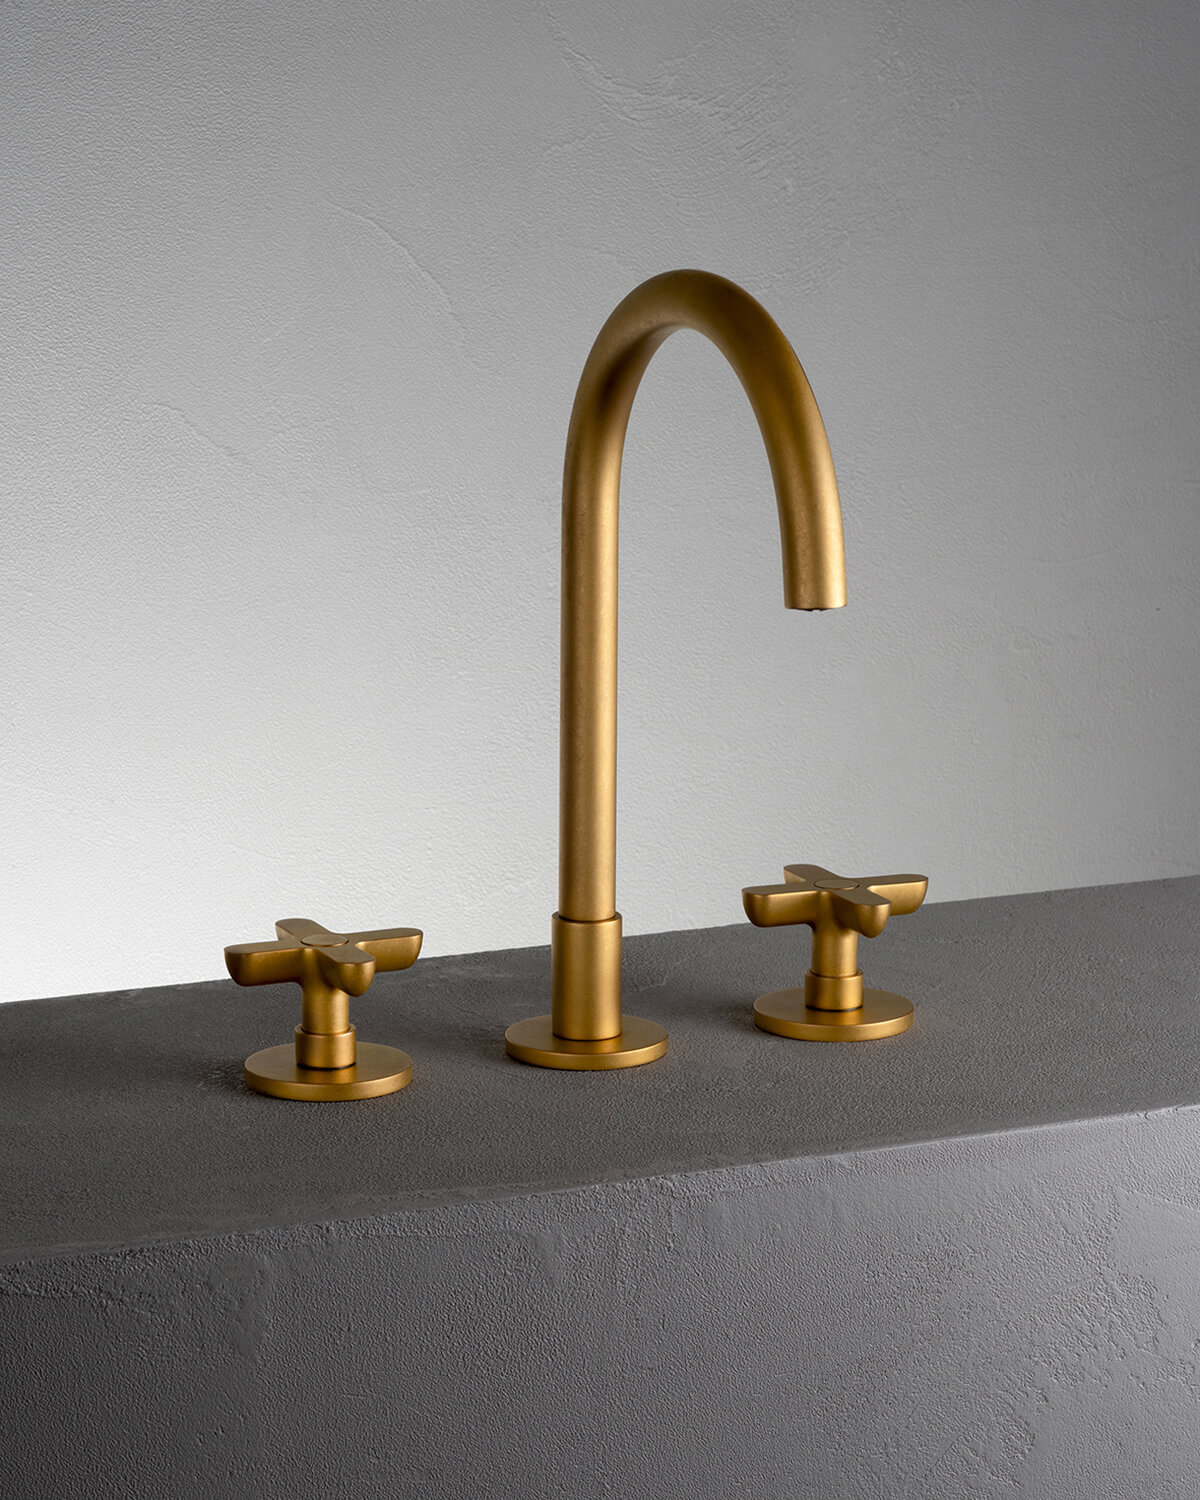 Icona Classic, Three-Hole Faucet, Pure Brass, on a grey stone plinth in front of a grey wall